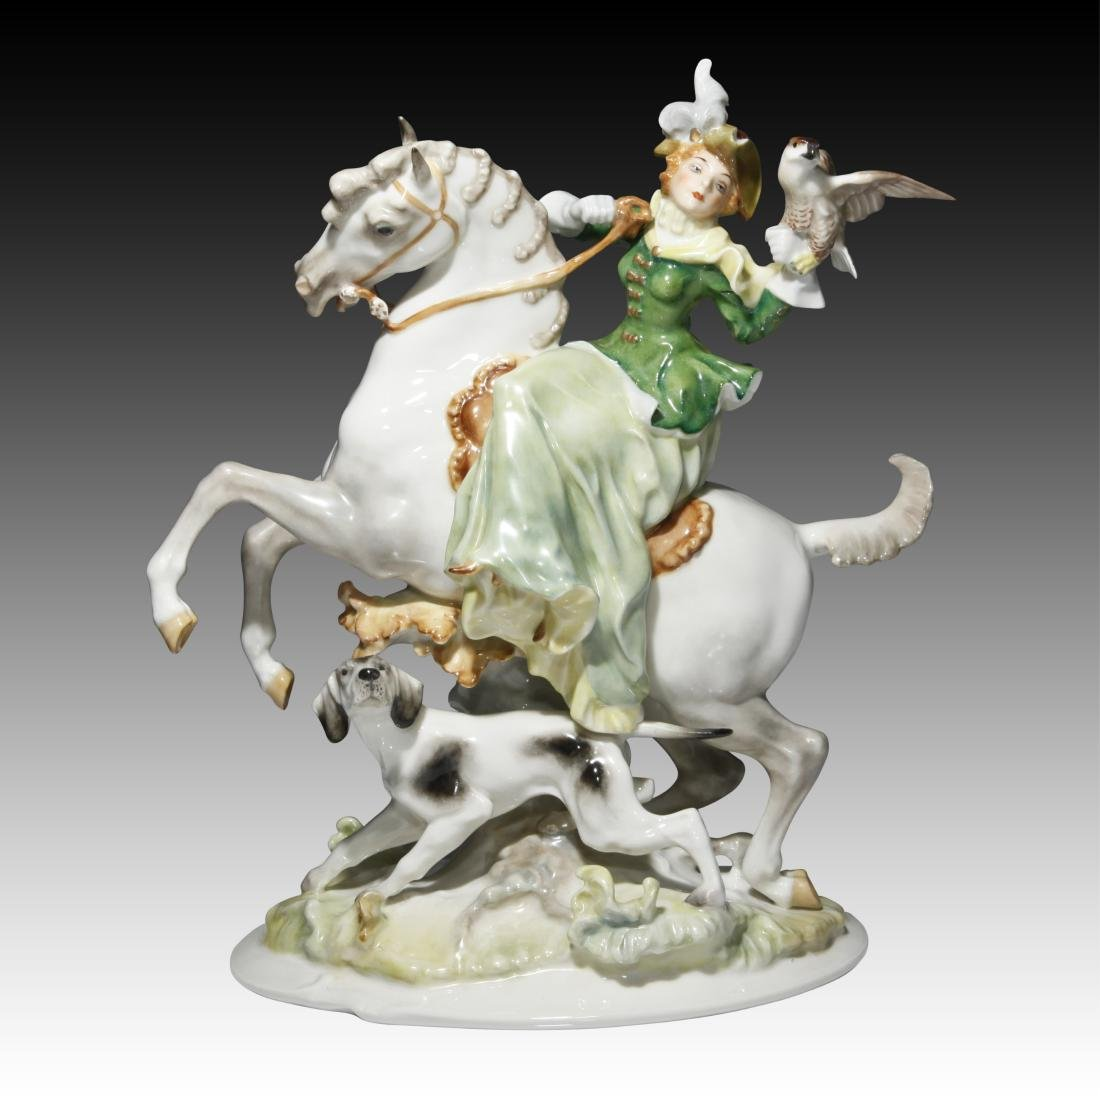 Hutschenreuther Woman on Horseback Figurine